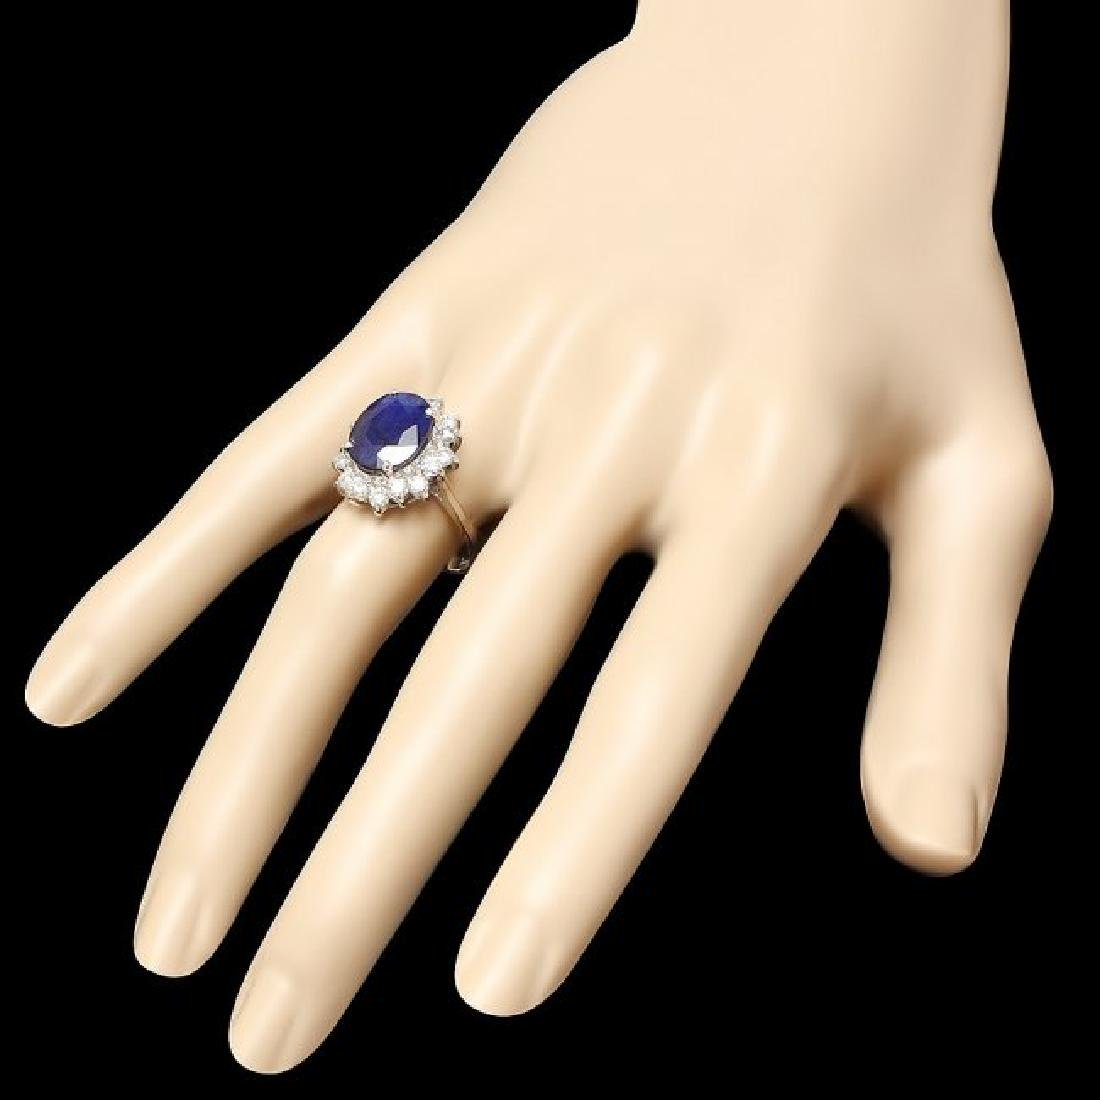 14k Gold 5.52ct Sapphire 0.90ct Diamond Ring - 3